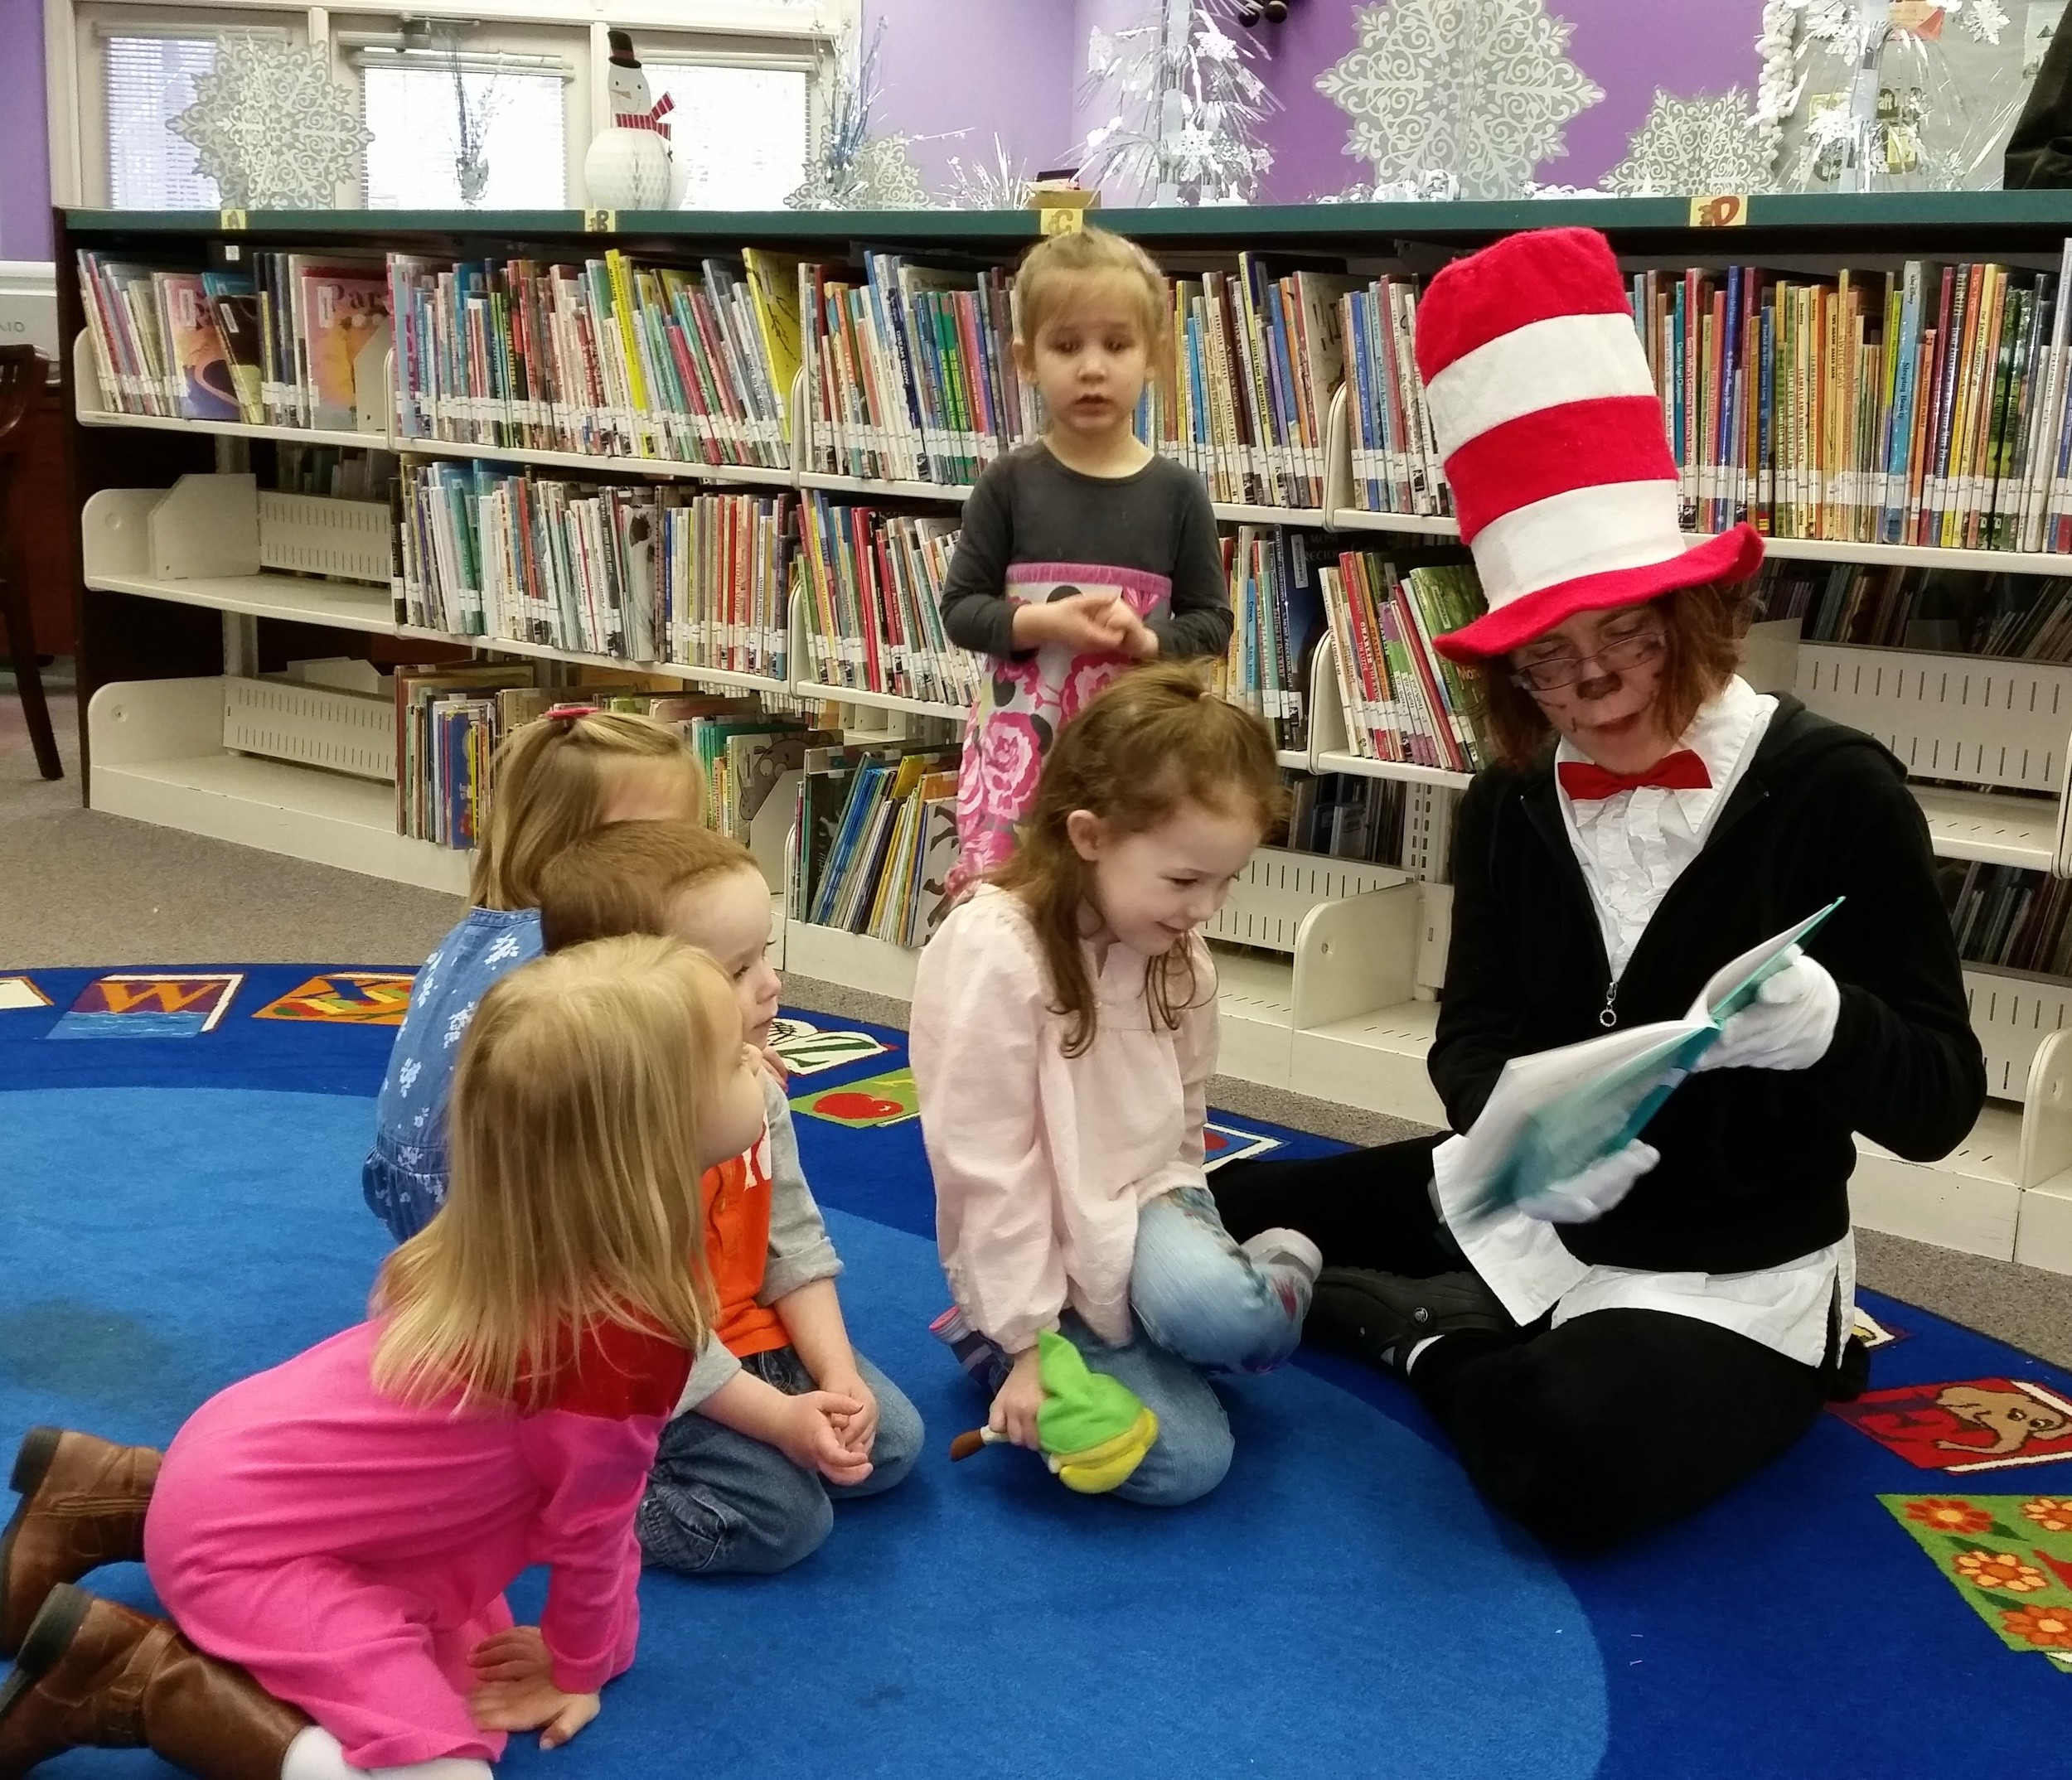 In honor of Dr. Suess week, the Cat in the Hat dropped by and gave the kids a special treat.